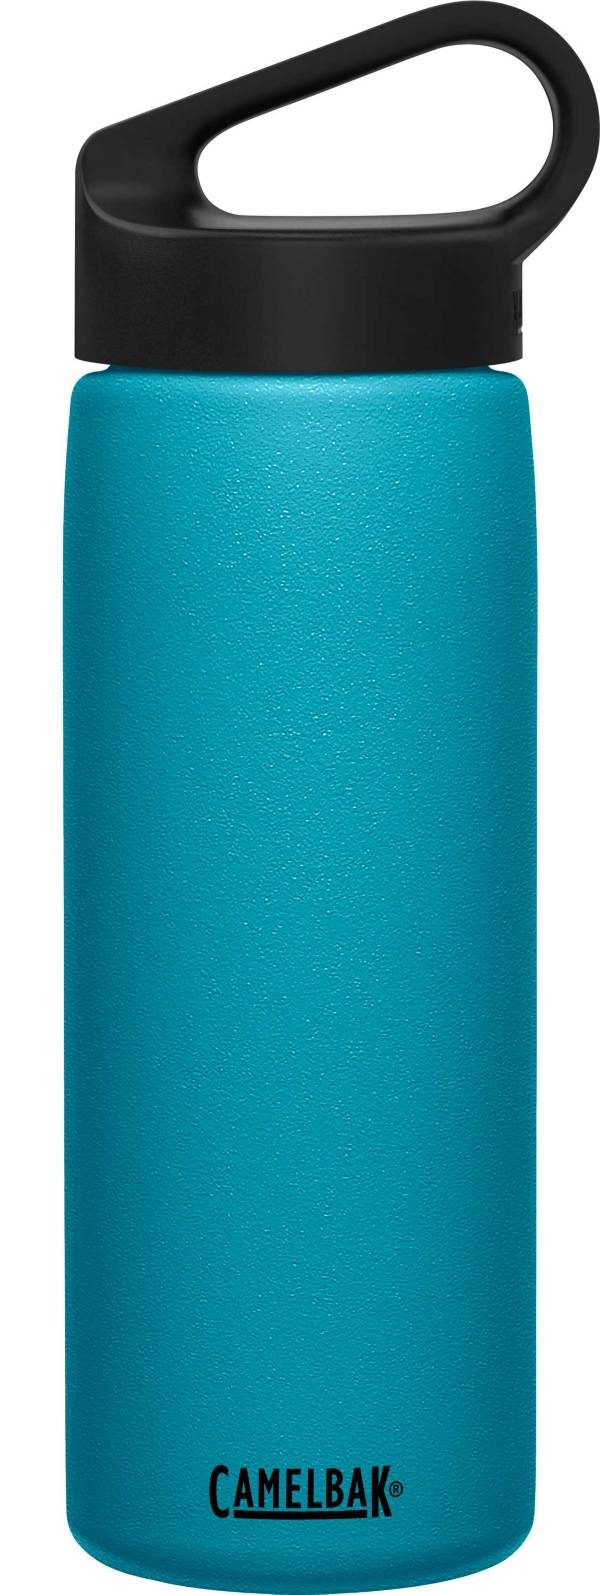 CamelBak Carry Cap Stainless Steel 20 oz. Insulated Bottle product image